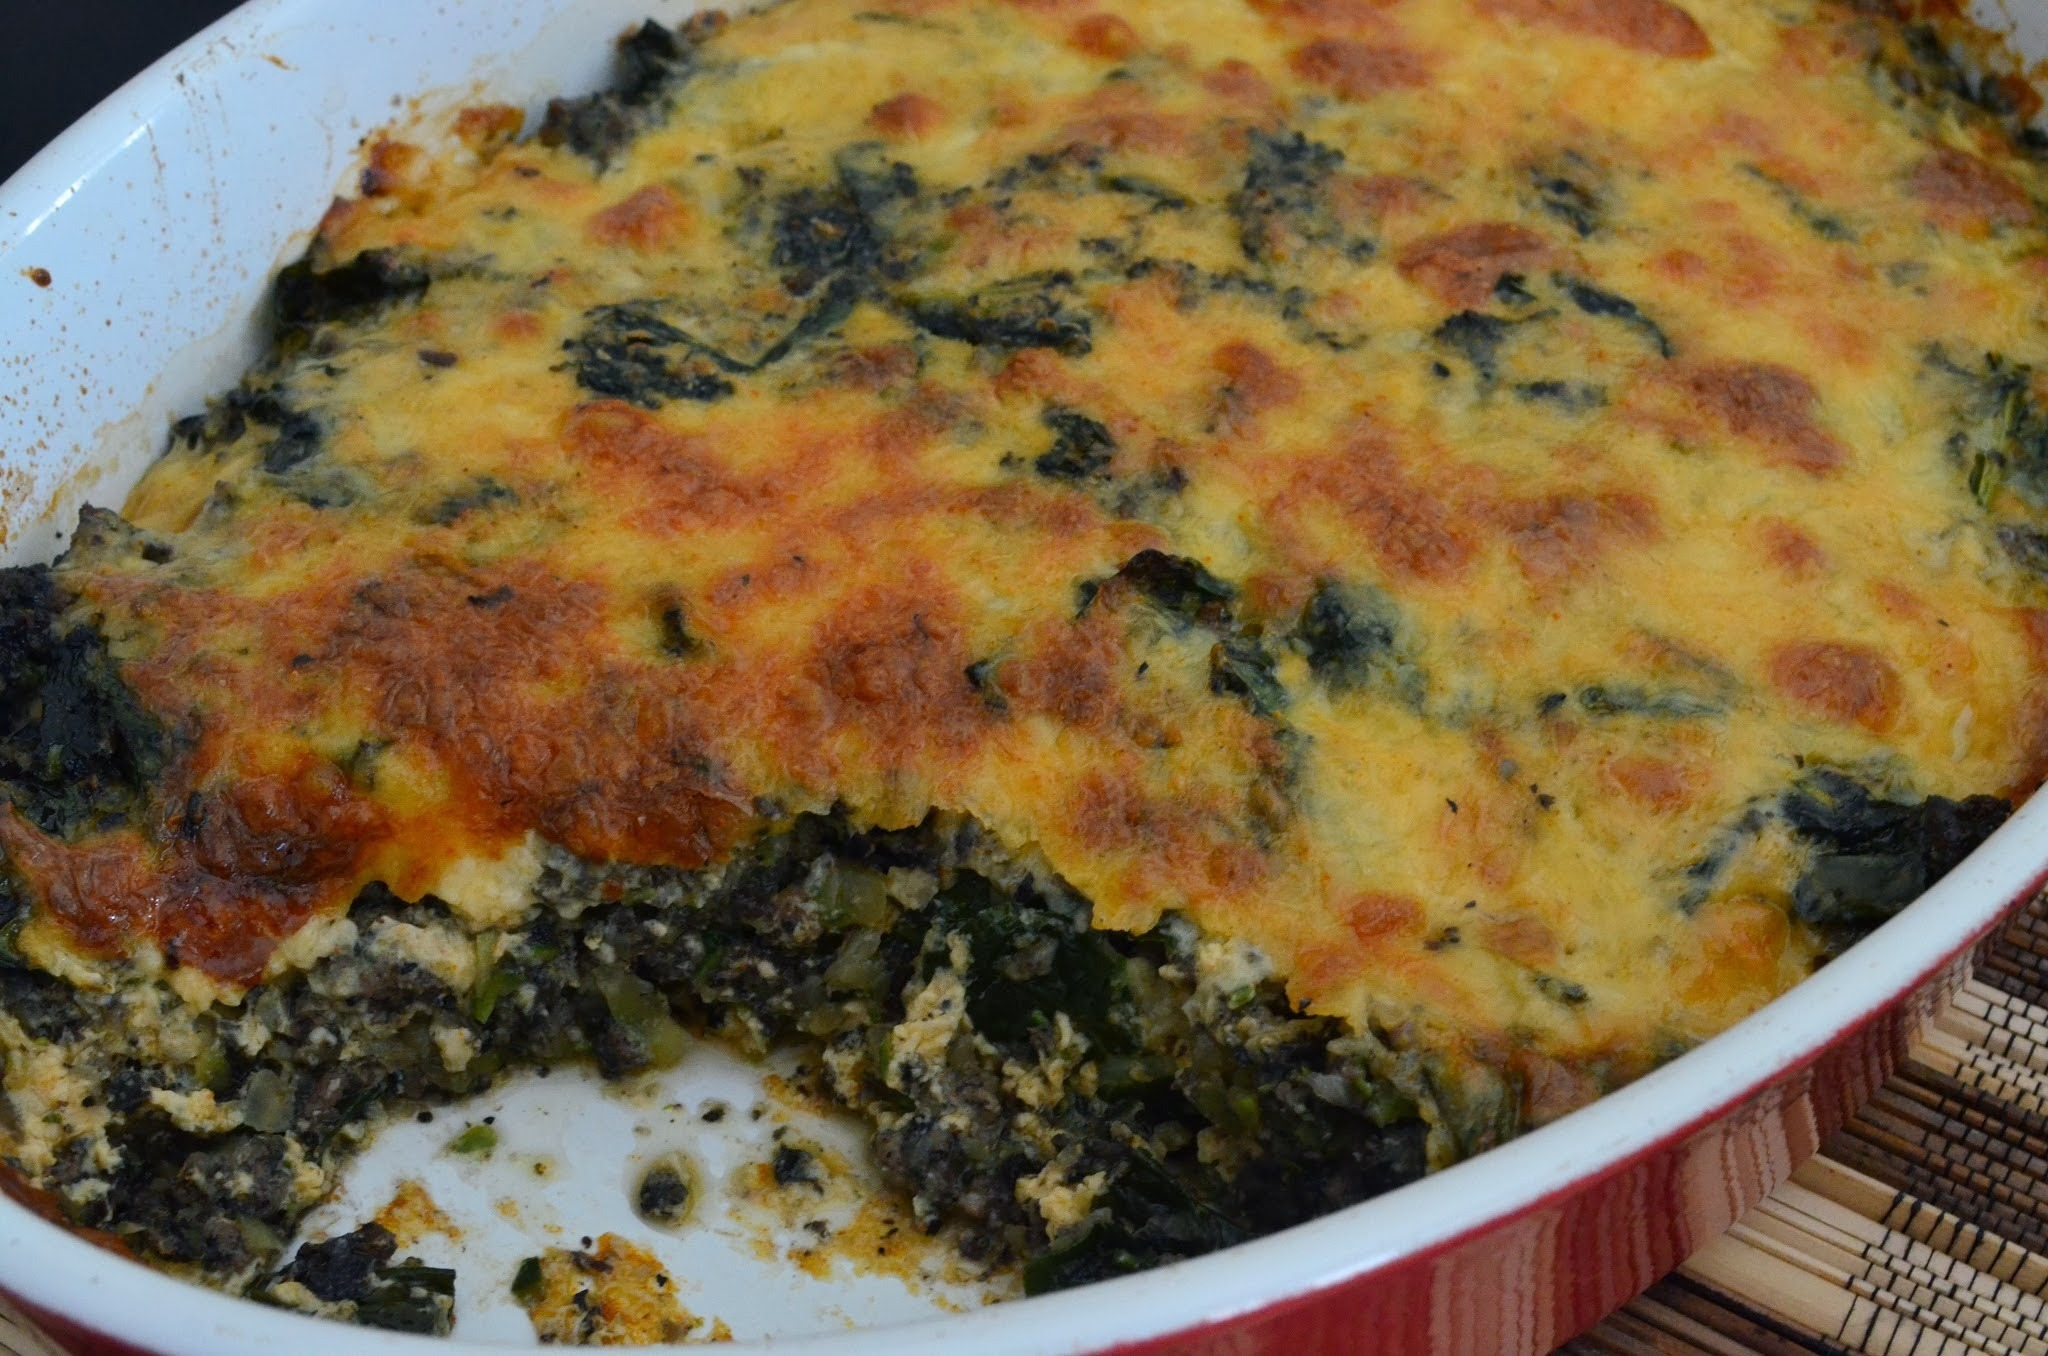 Cheesy vege bake